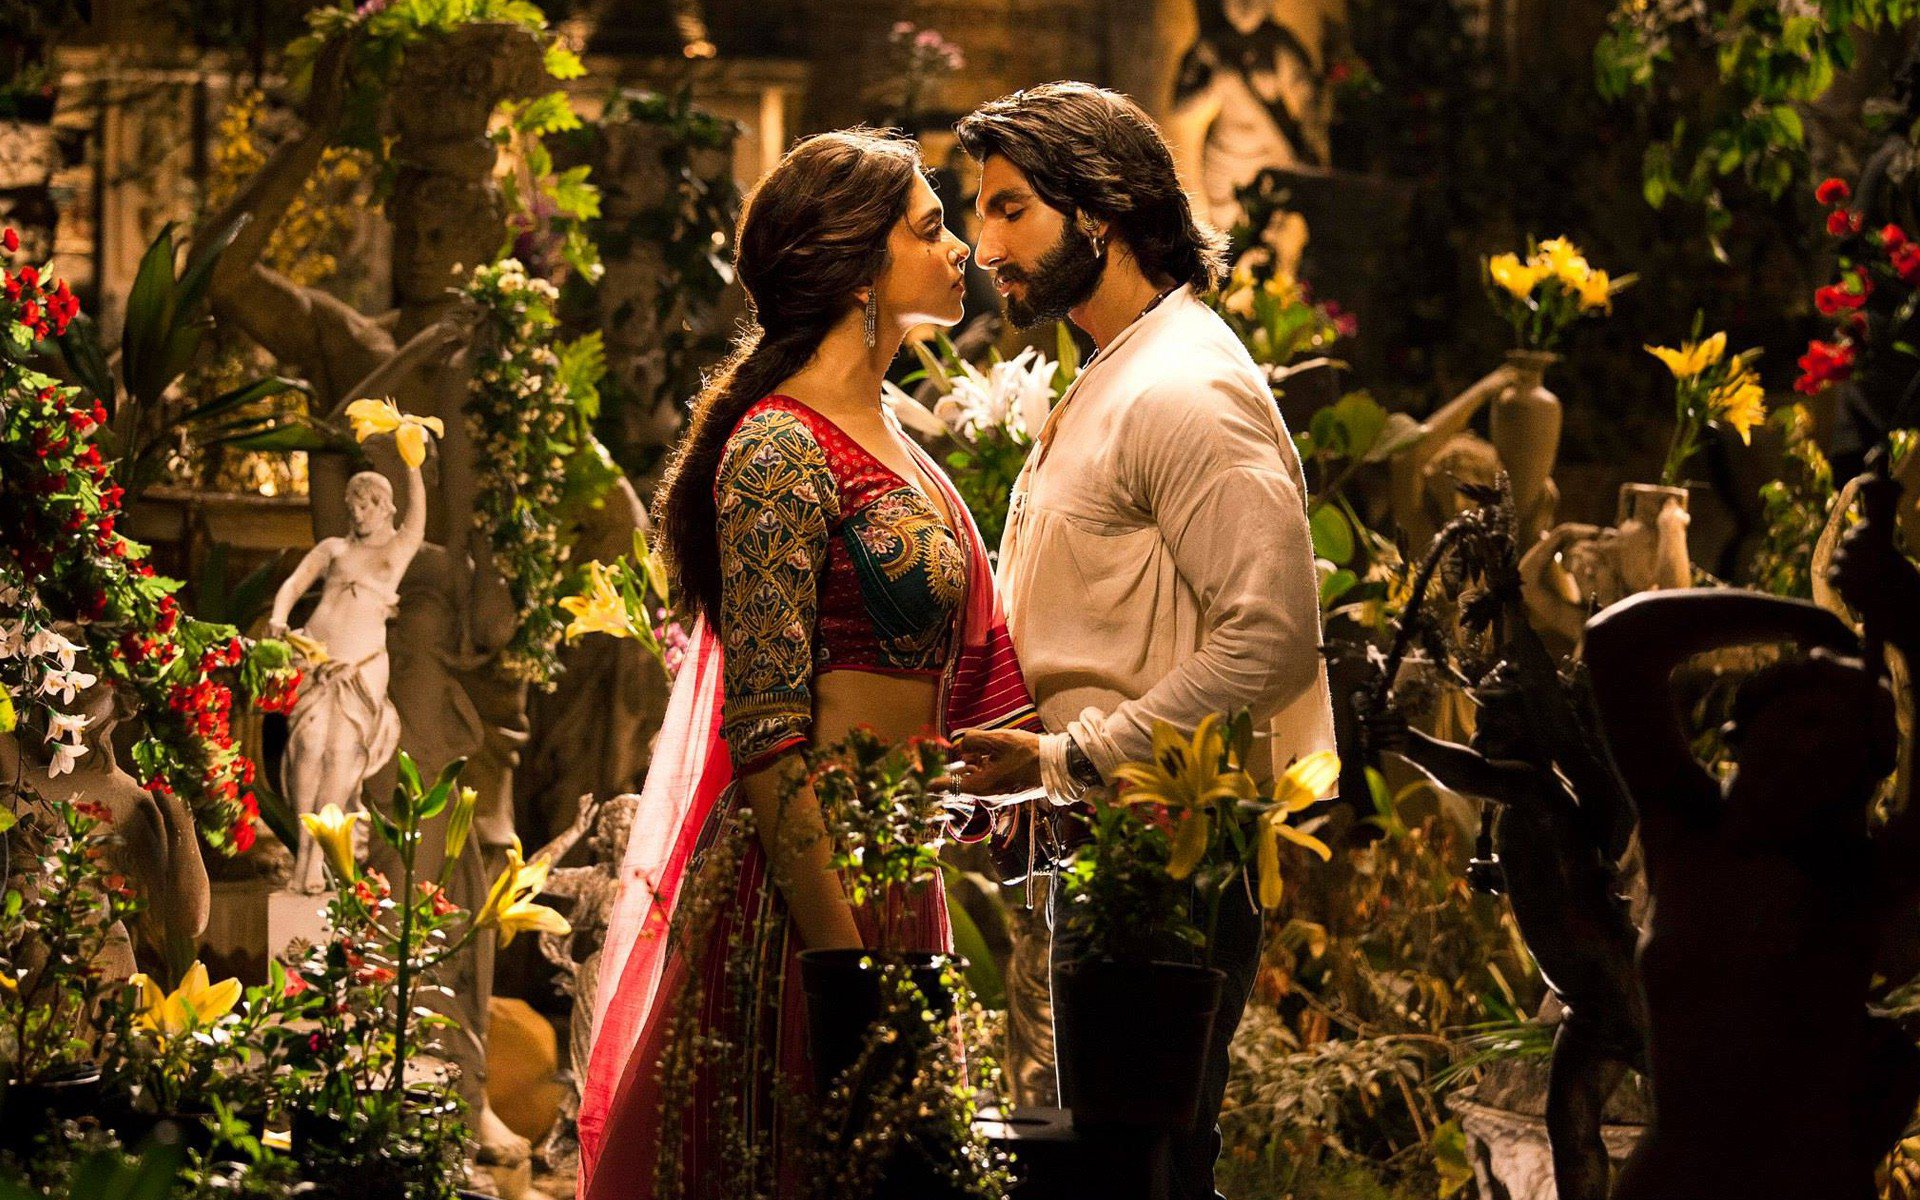 360x640 Ram Leela Movie 360x640 Resolution Hd 4k Wallpapers Images